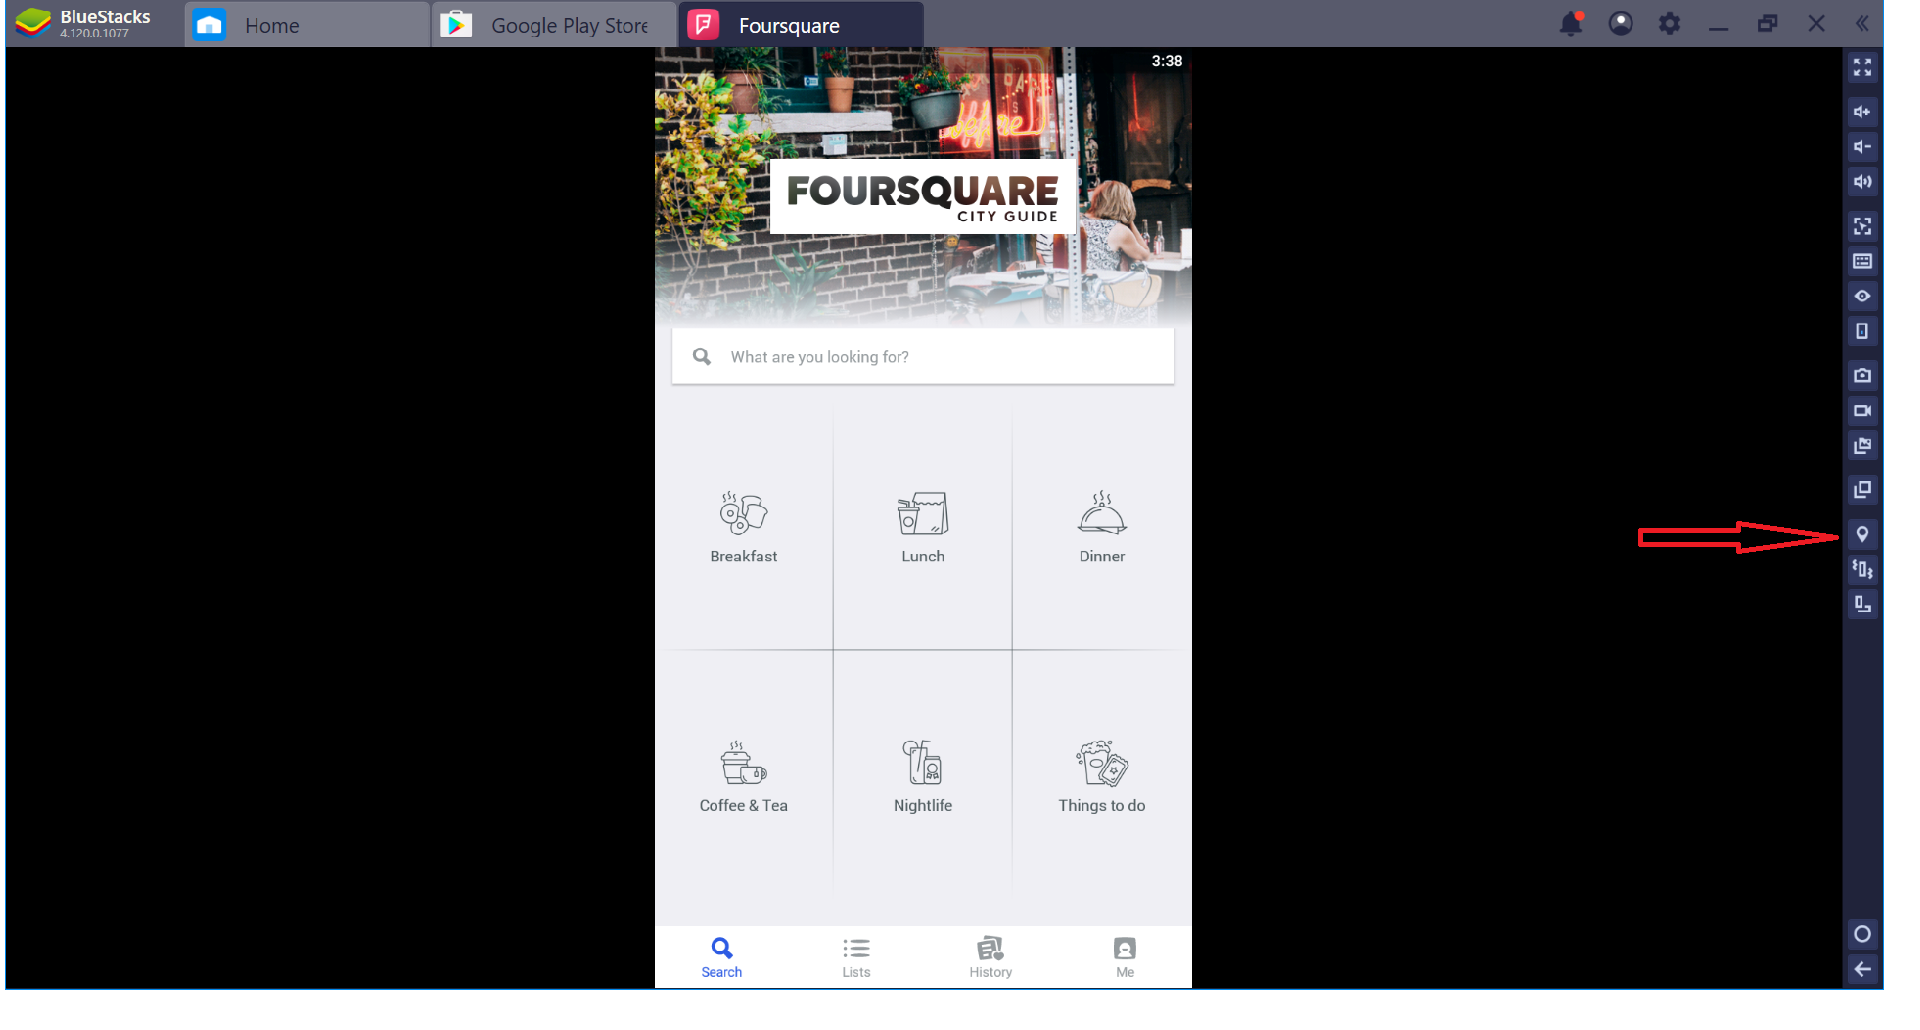 How to use location provider on BlueStacks? – BlueStacks Support